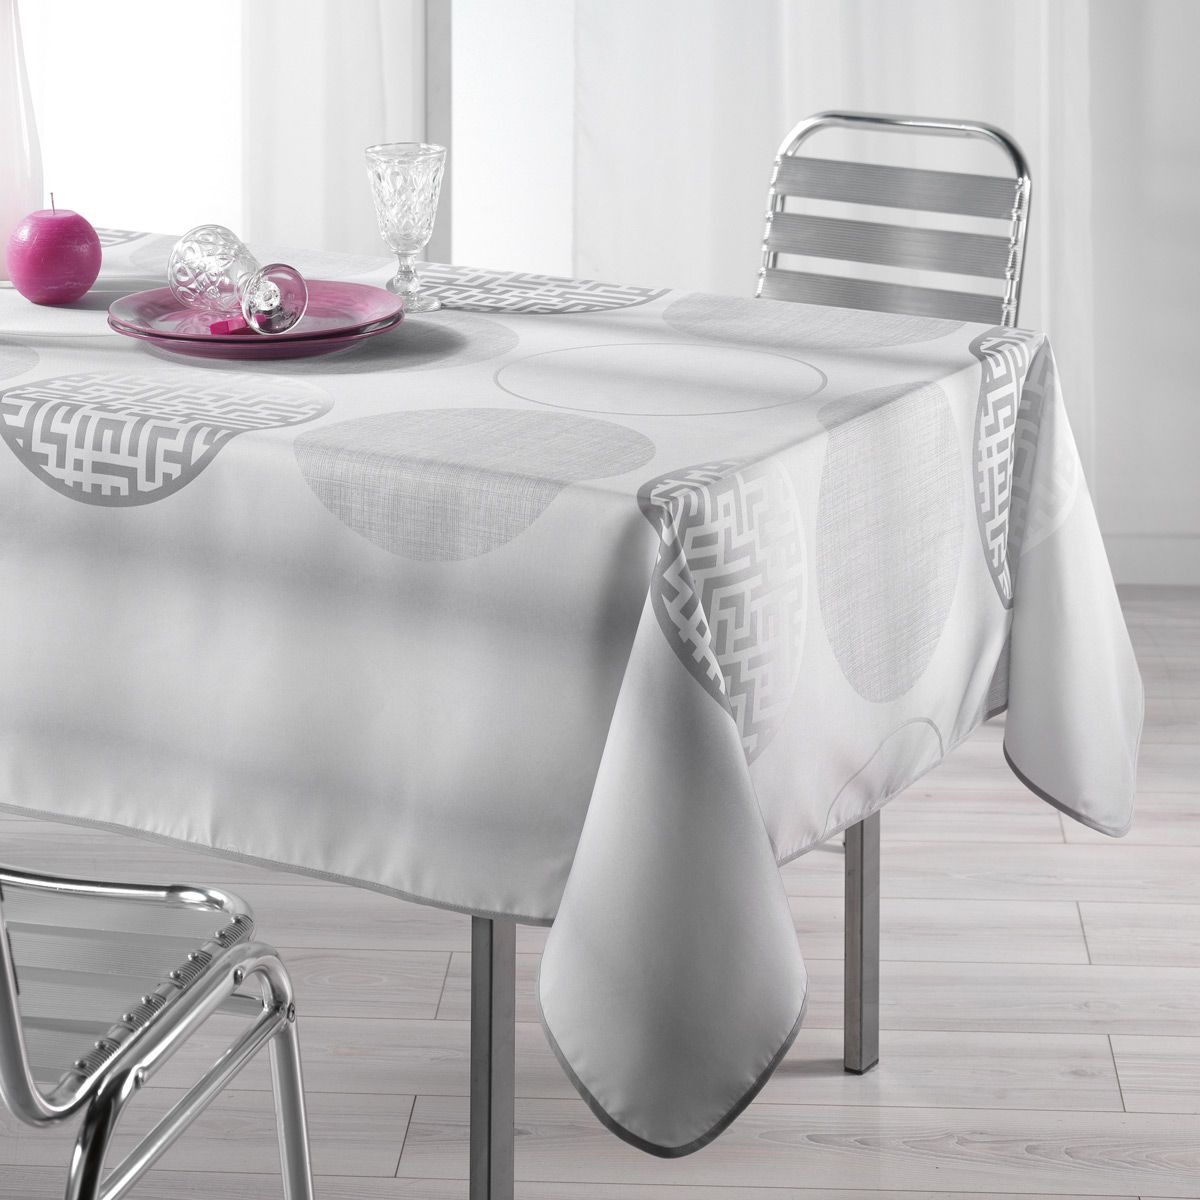 nappe rectangulaire l240 cm kosmo gris nappe de table. Black Bedroom Furniture Sets. Home Design Ideas